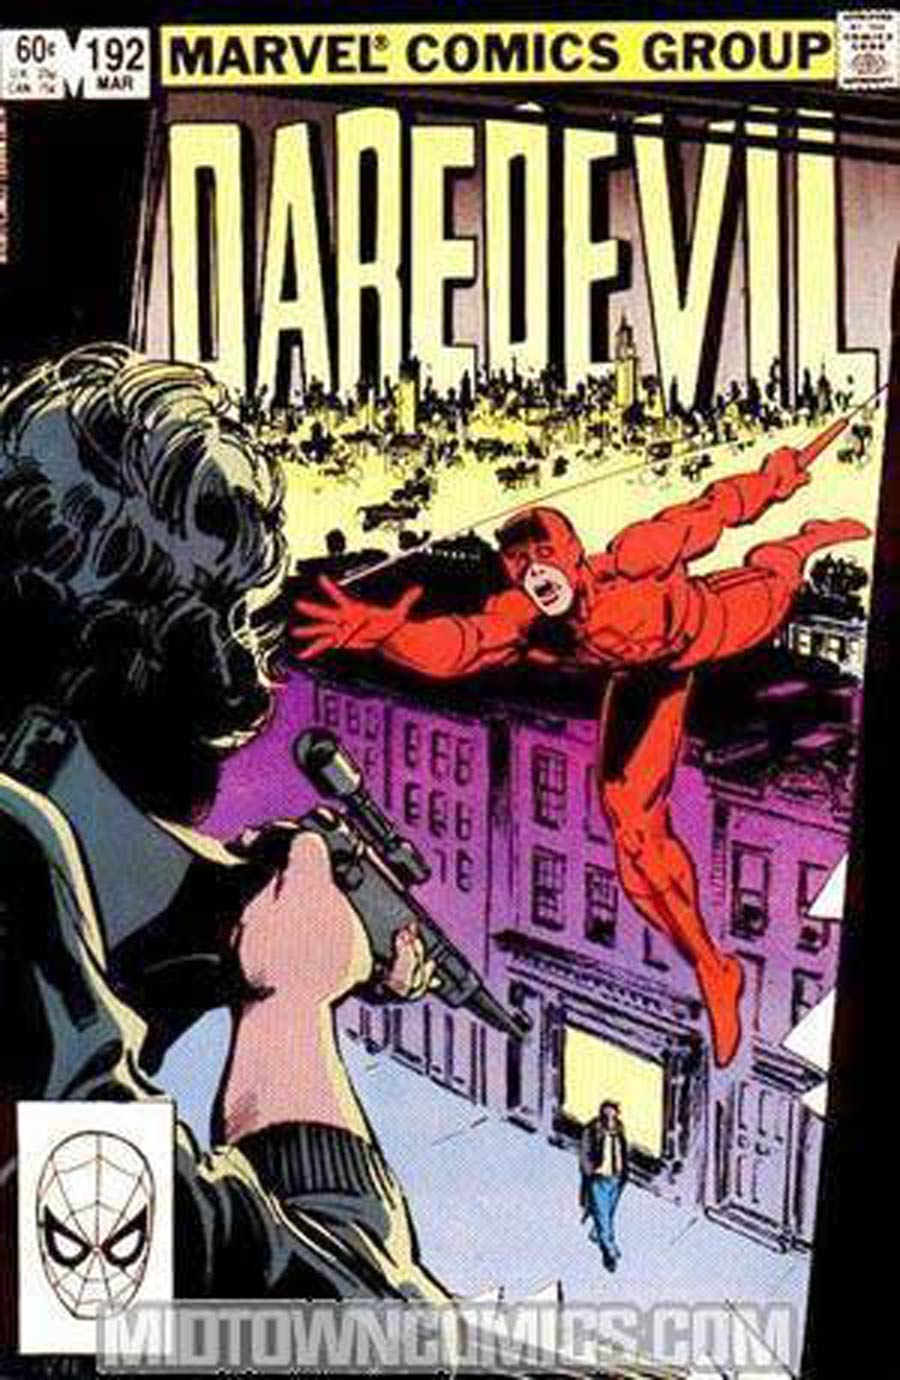 Daredevil #192 Cover B Without Tattooz